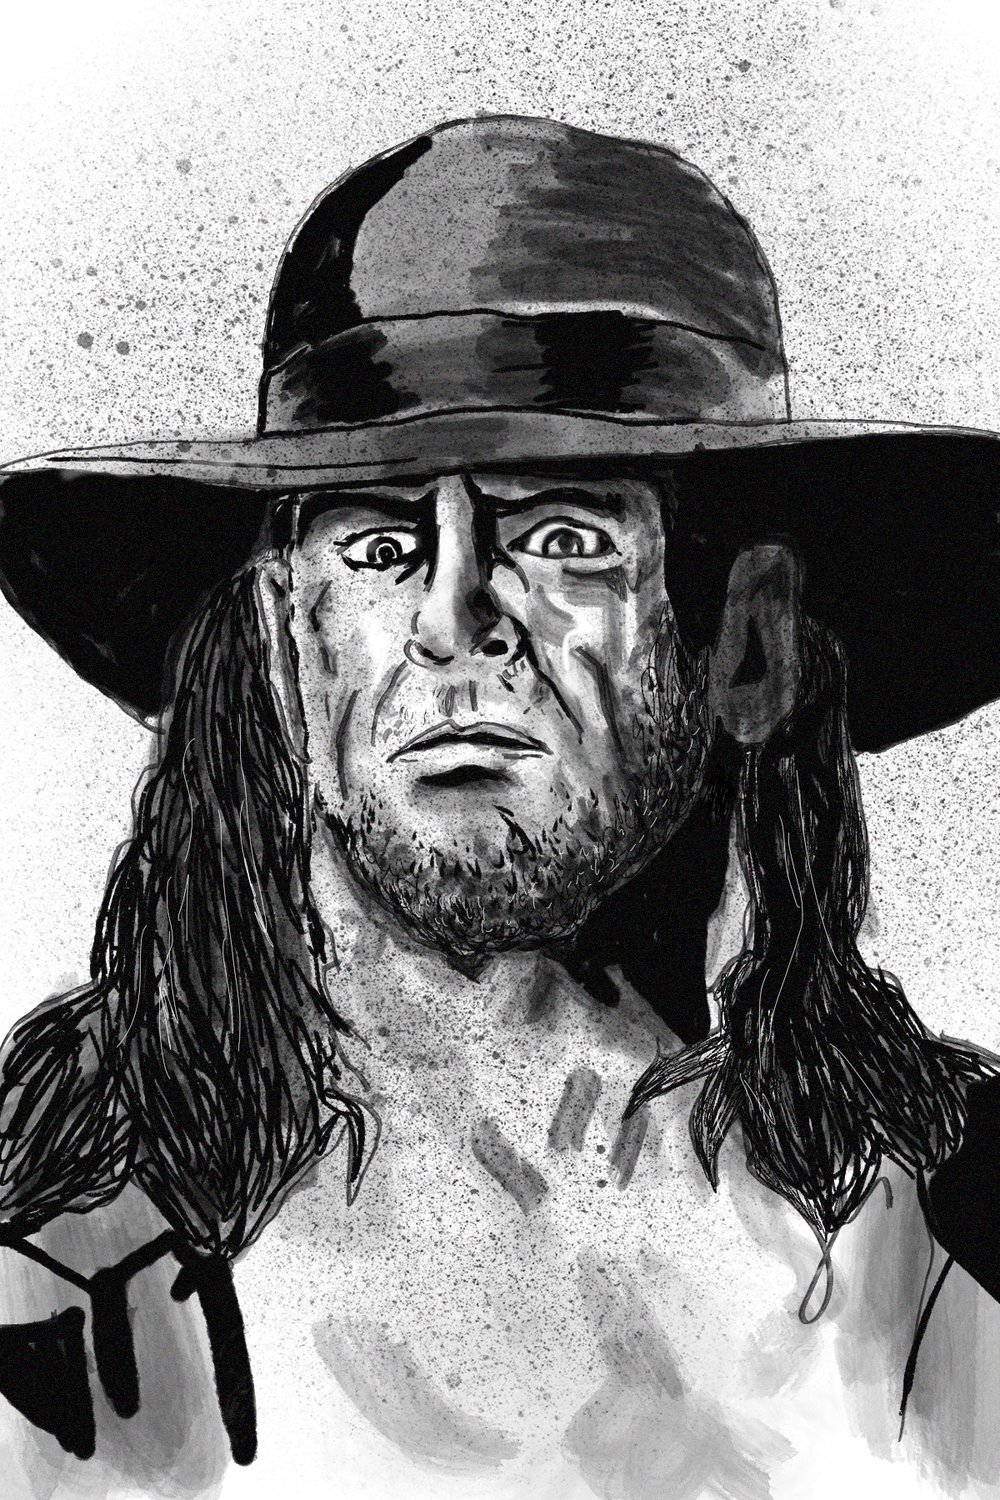 Undertaker_Procreate.jpg